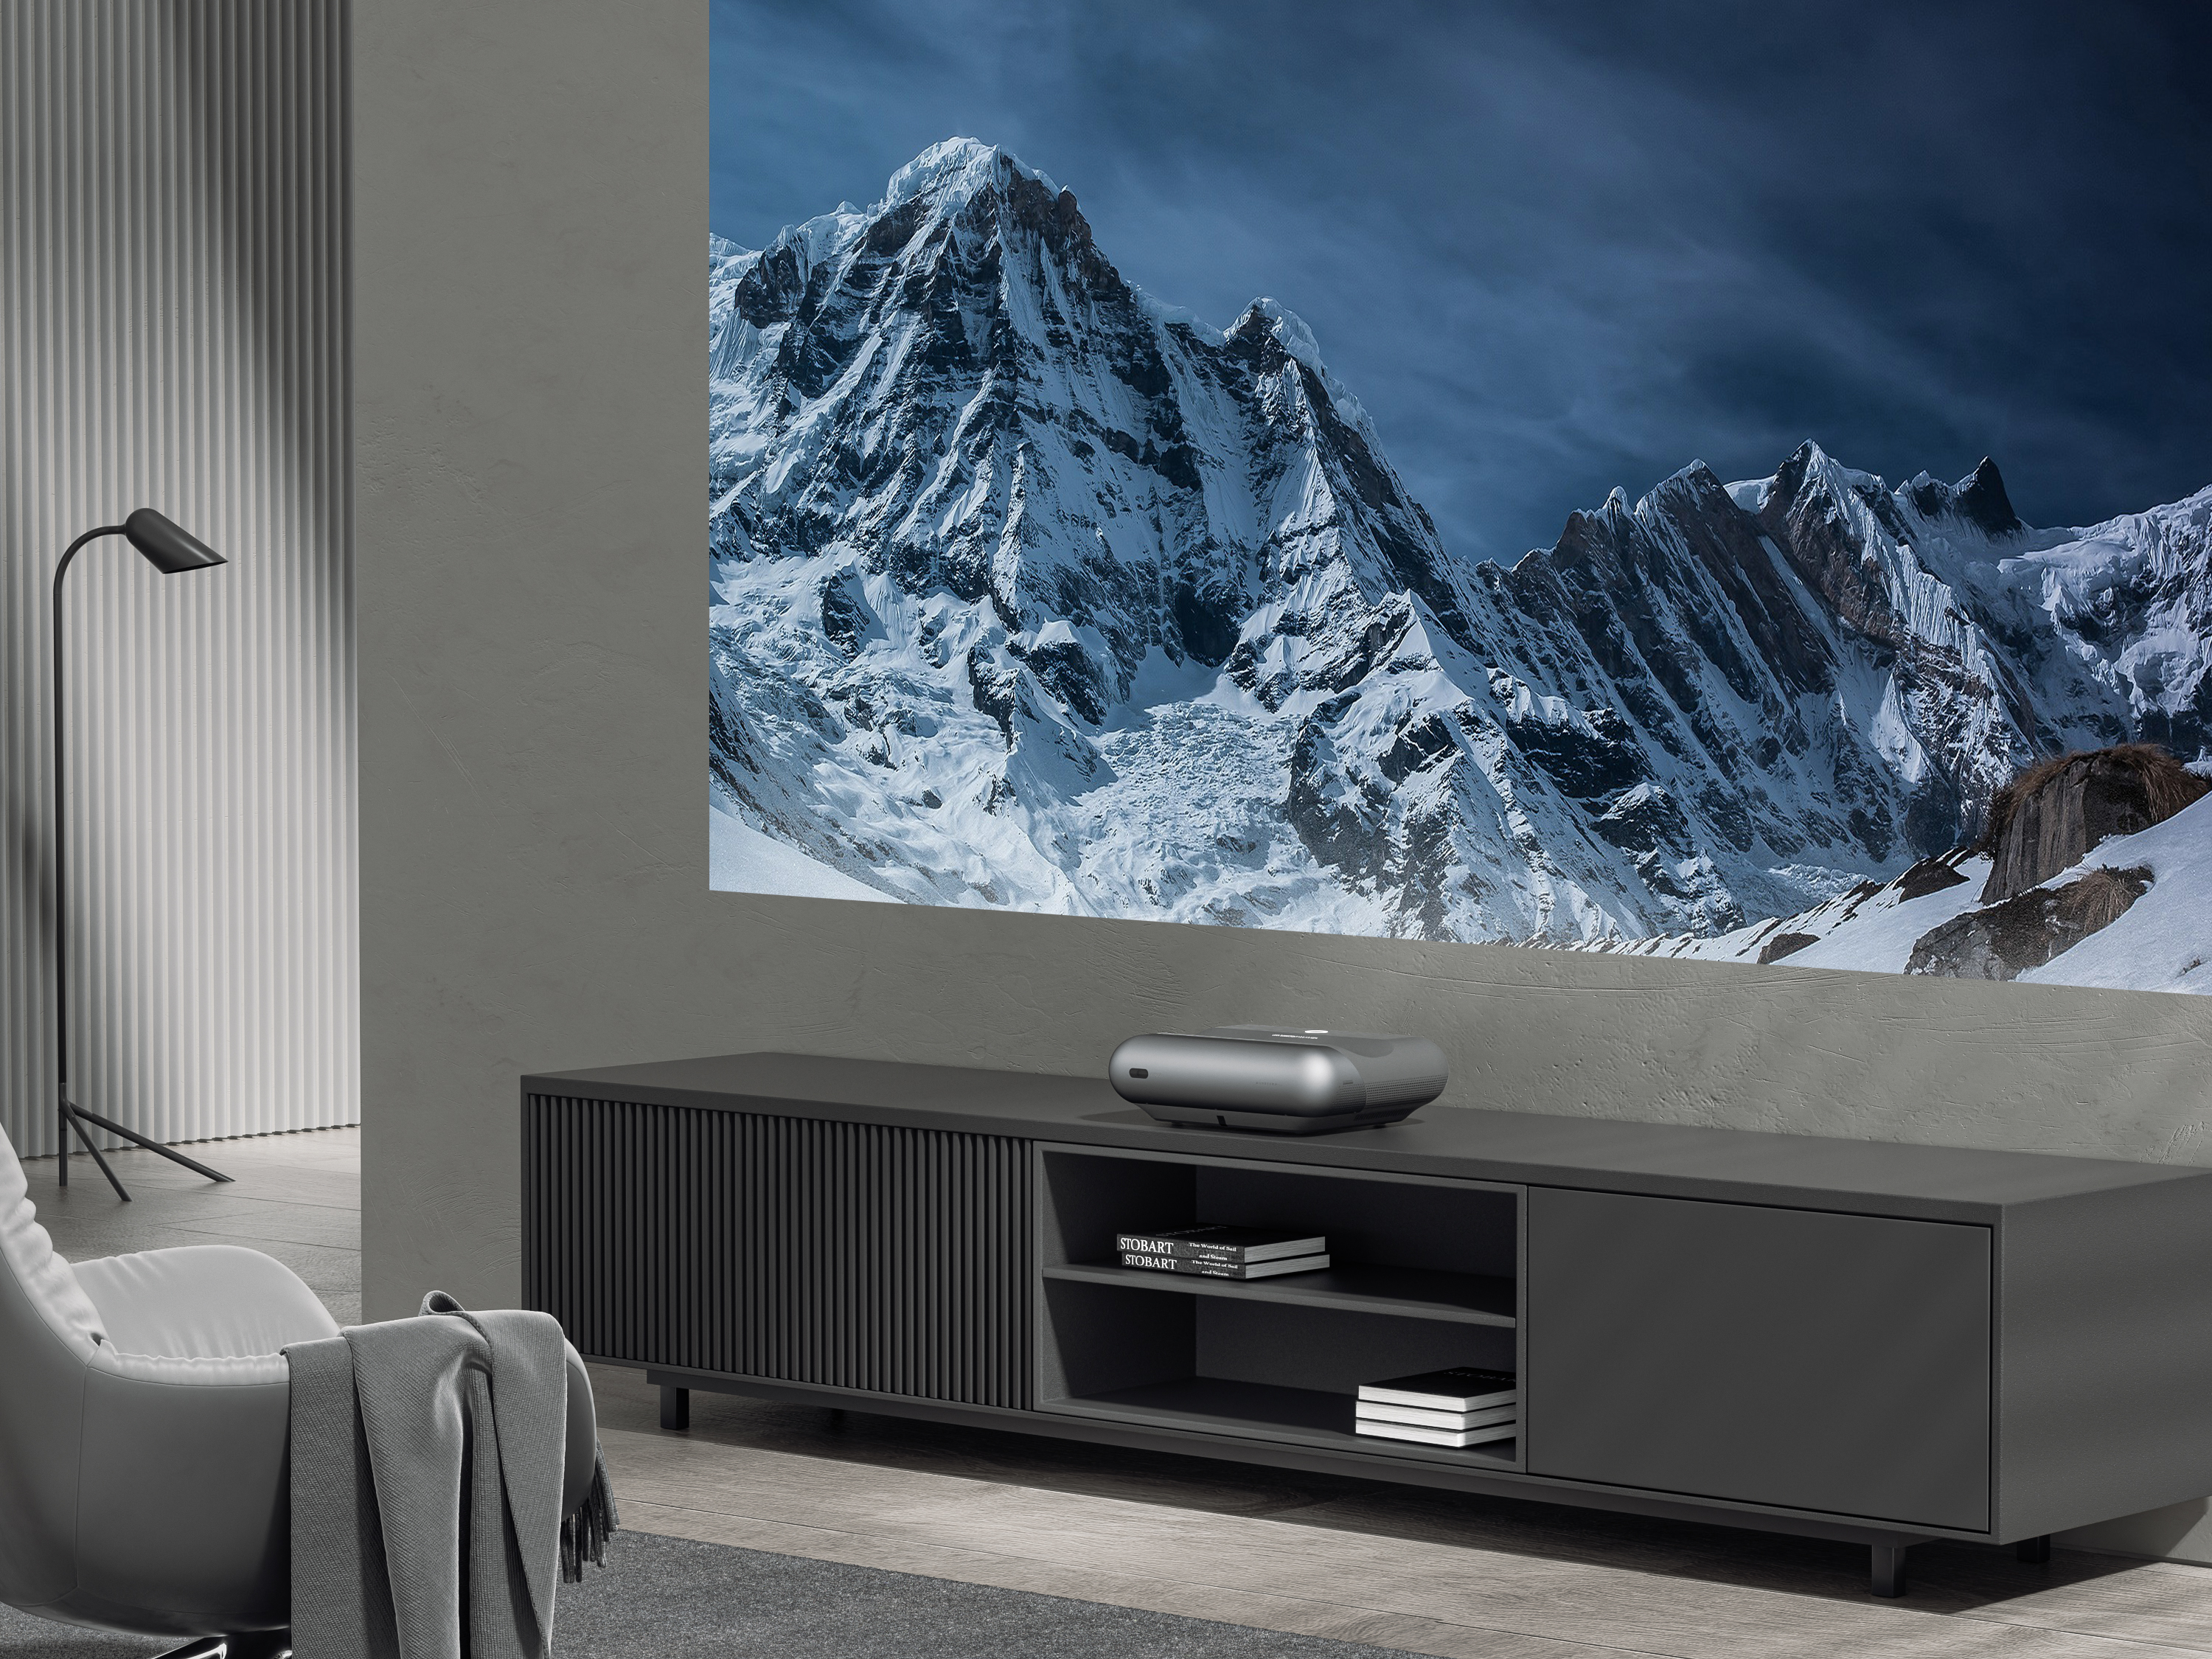 Big screen entertainment from mere inches away from the wall or screen, that's what JMGO promises from the O1 Series UST projectors